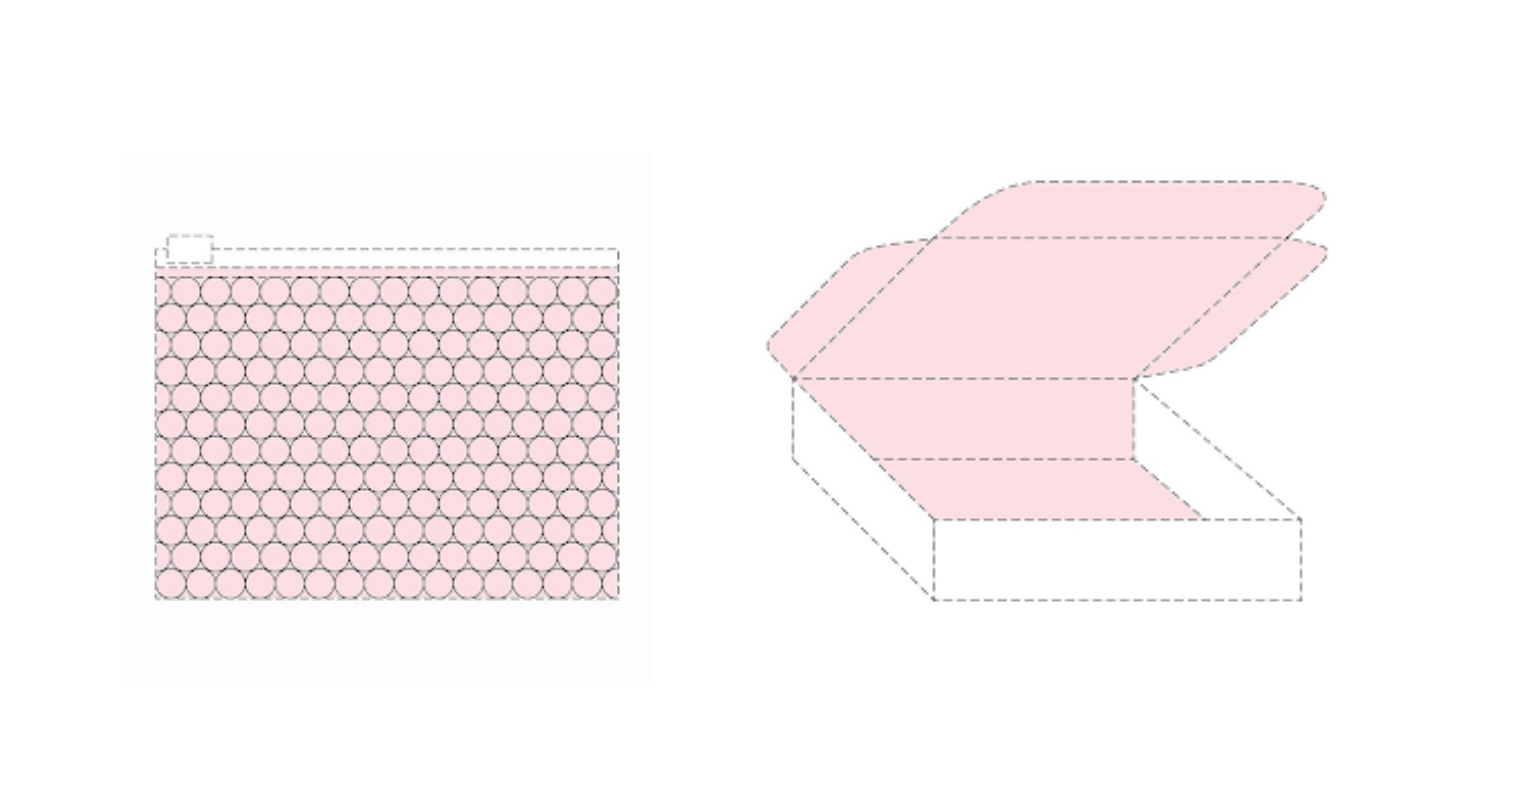 Glossier's bubble wrap pouch (left) & its pink interior box (right)